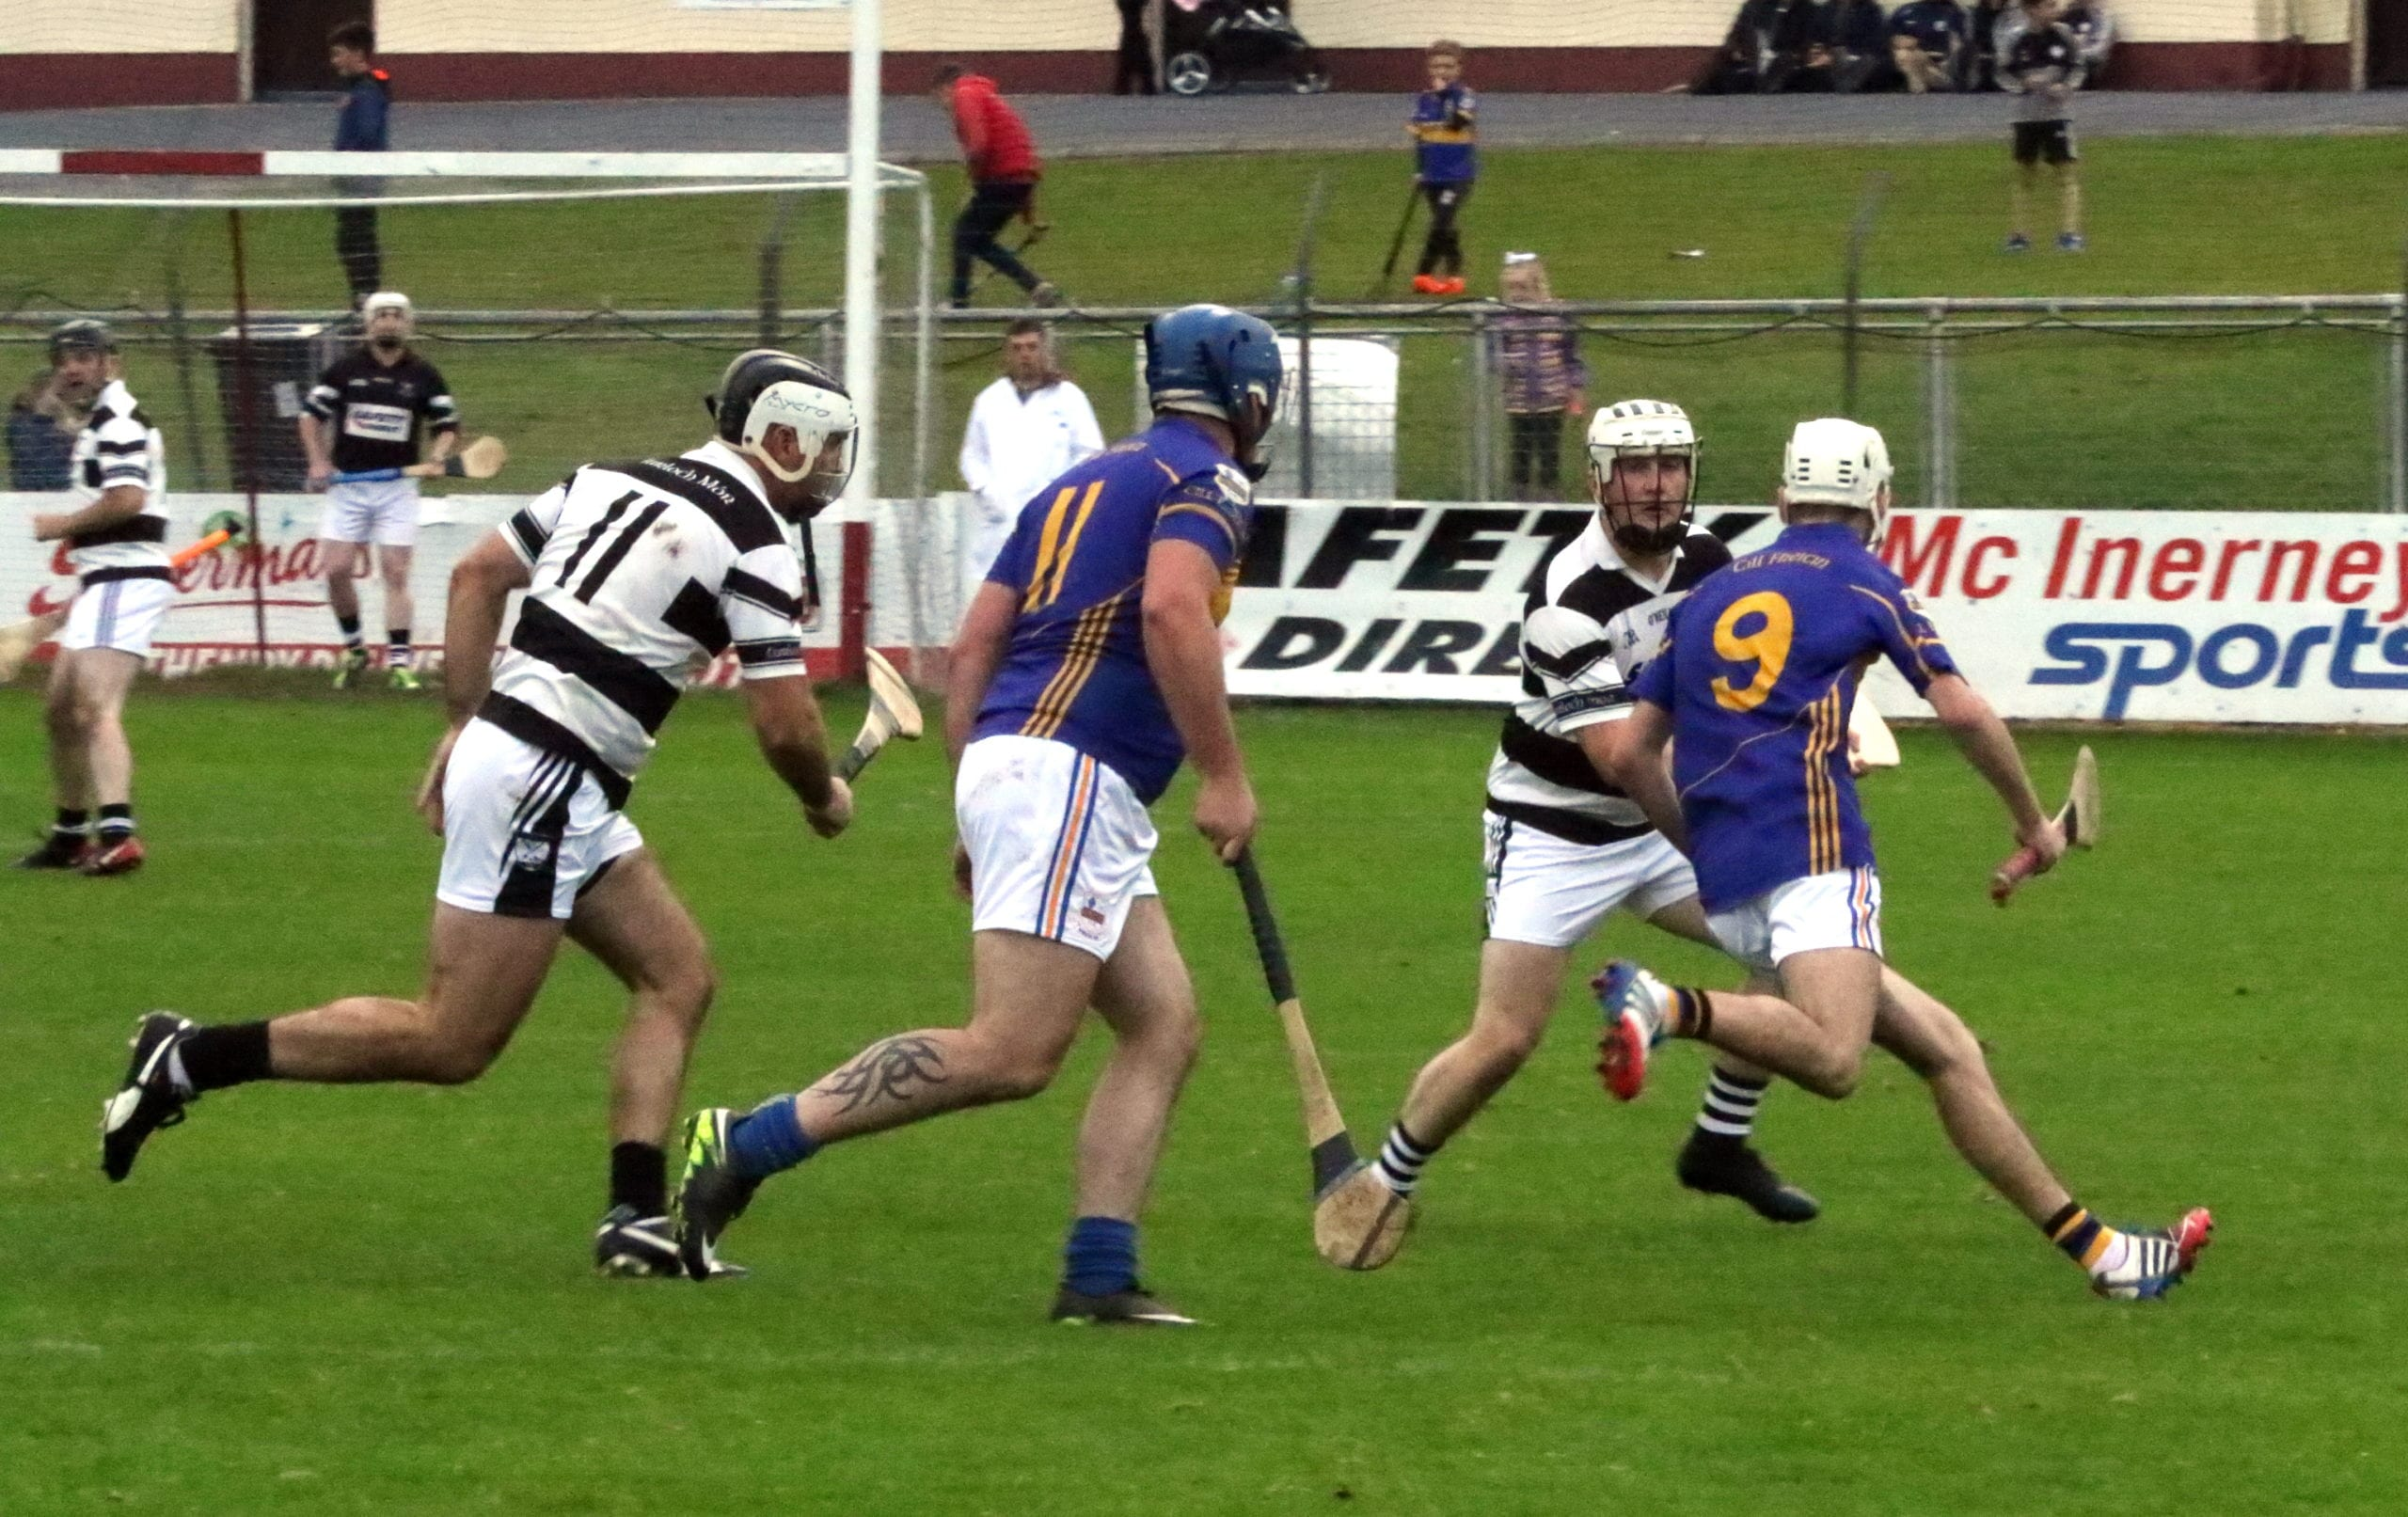 Kilbeacanty vs Turloughmore Junior C Hurling